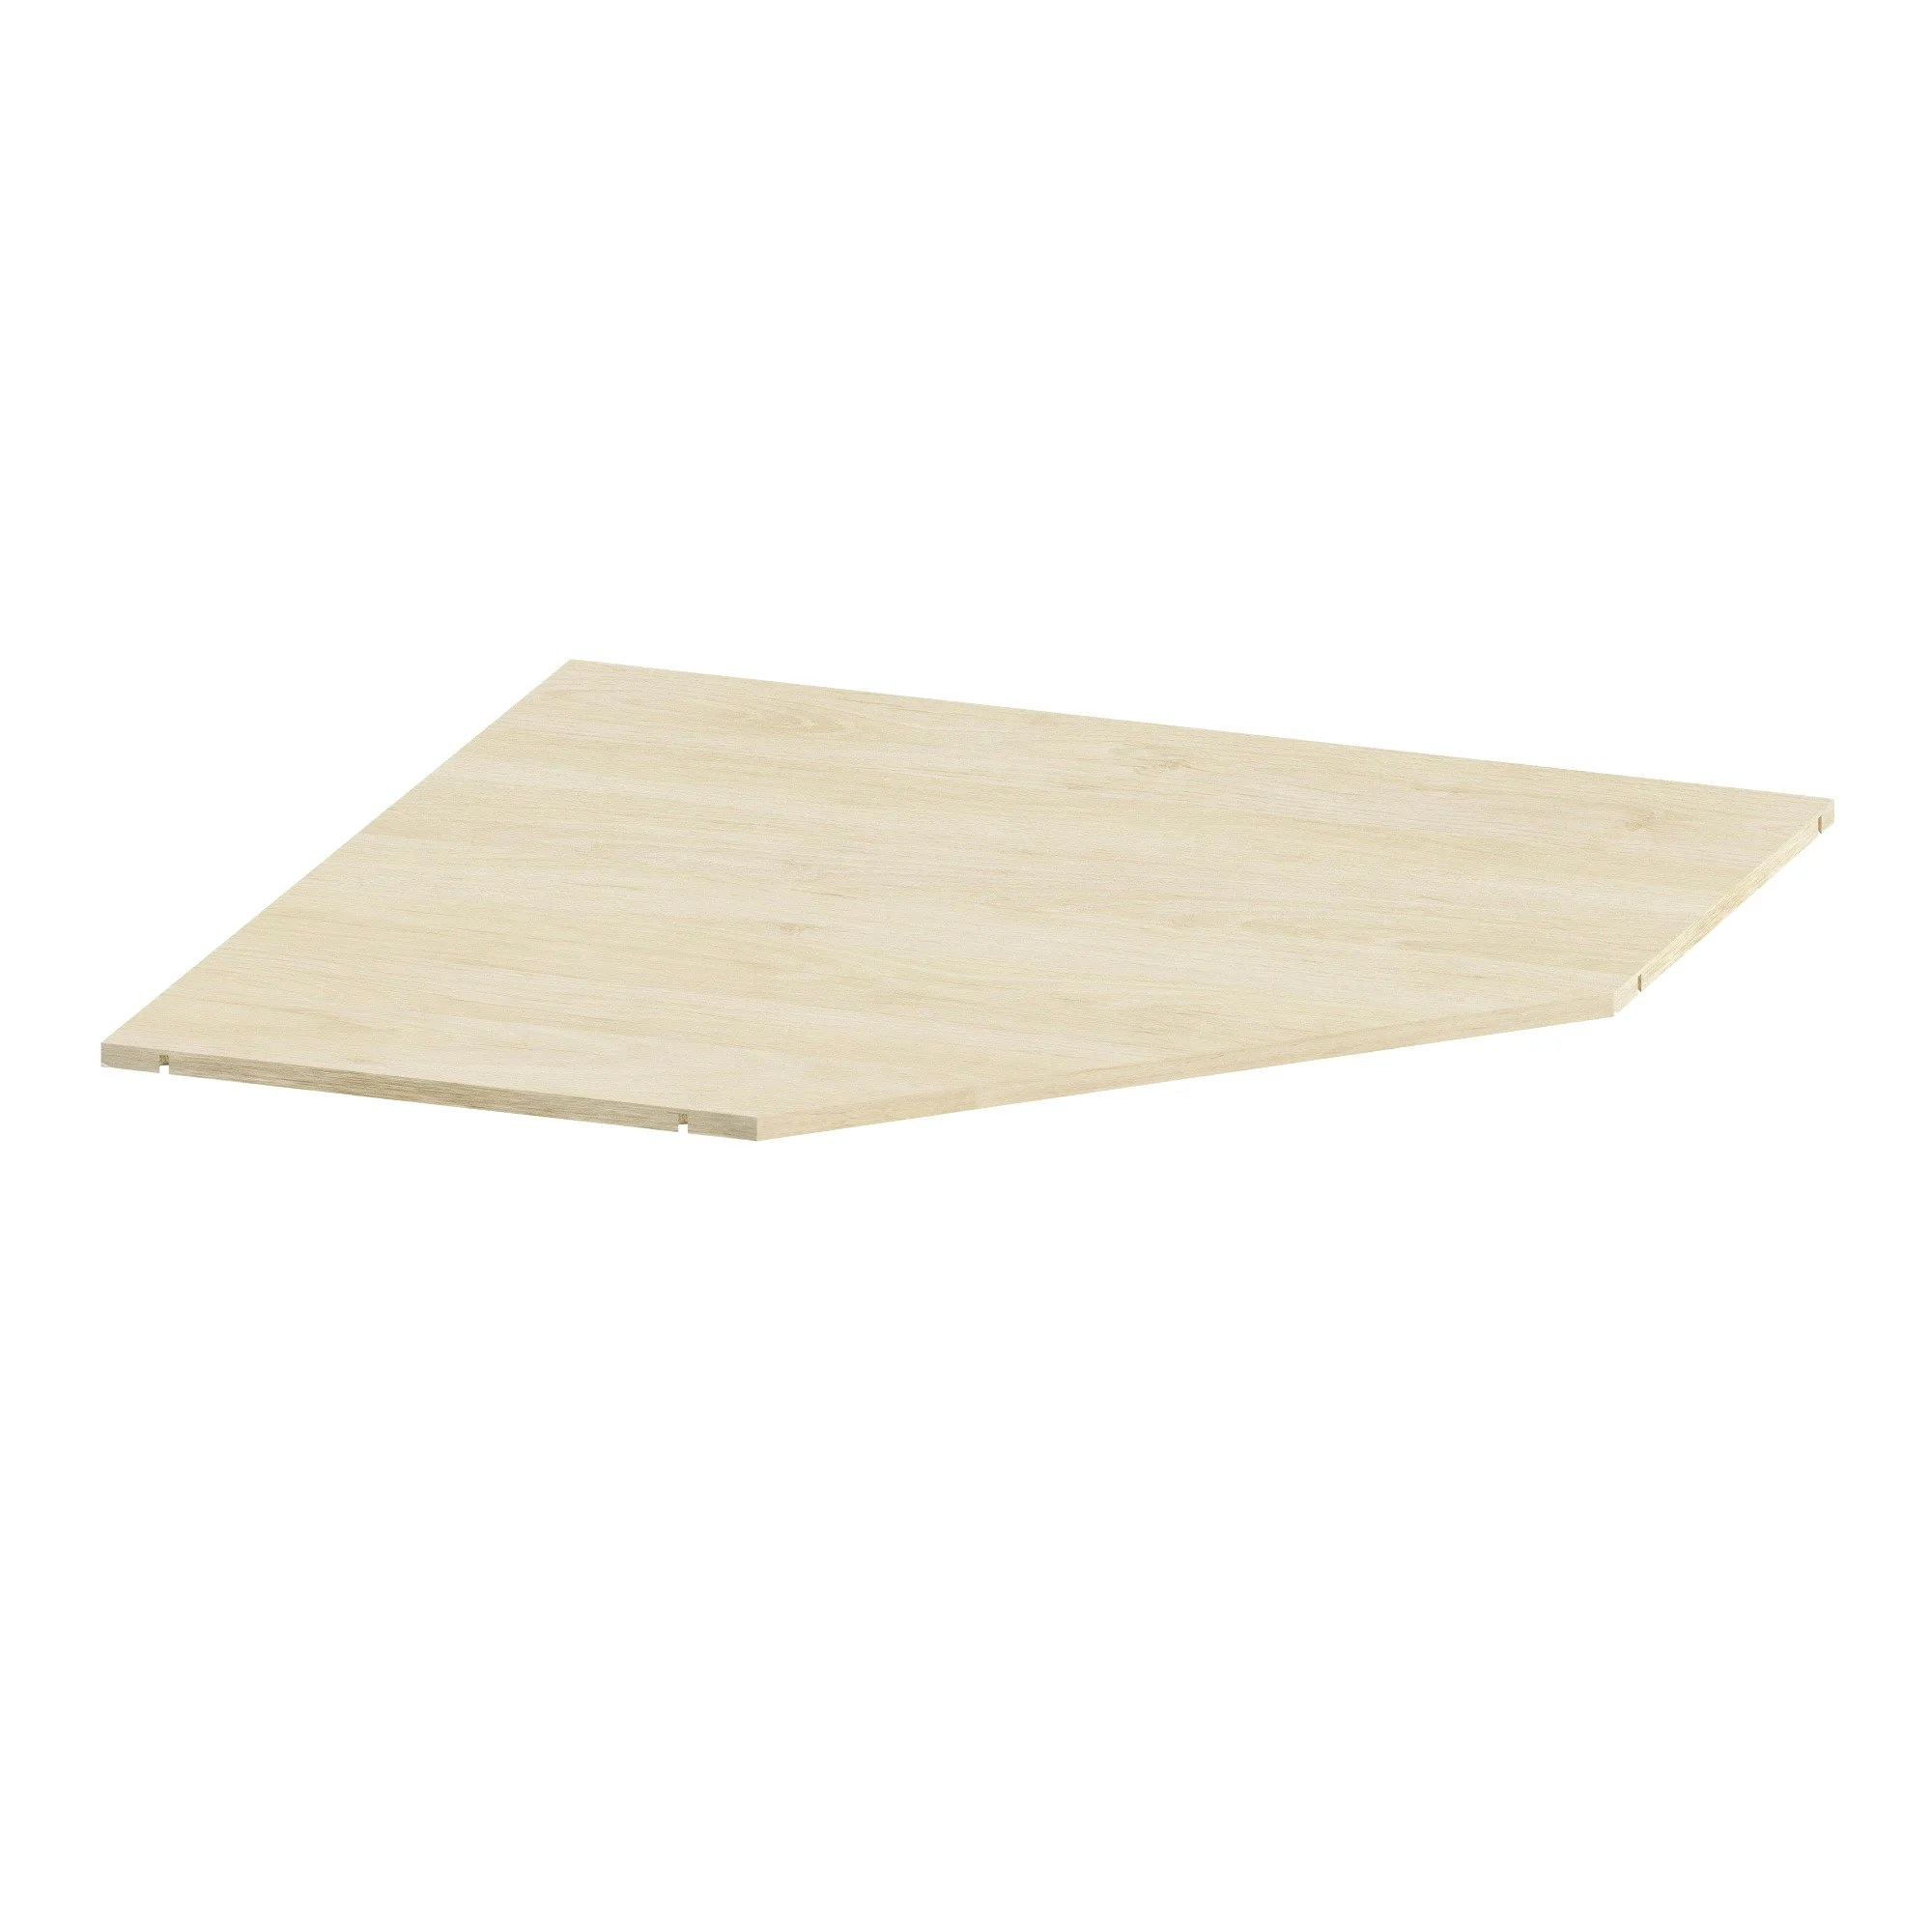 tablette d angle spaceo home 1 6 x 85 7 x 85 7 cm effet chene naturel